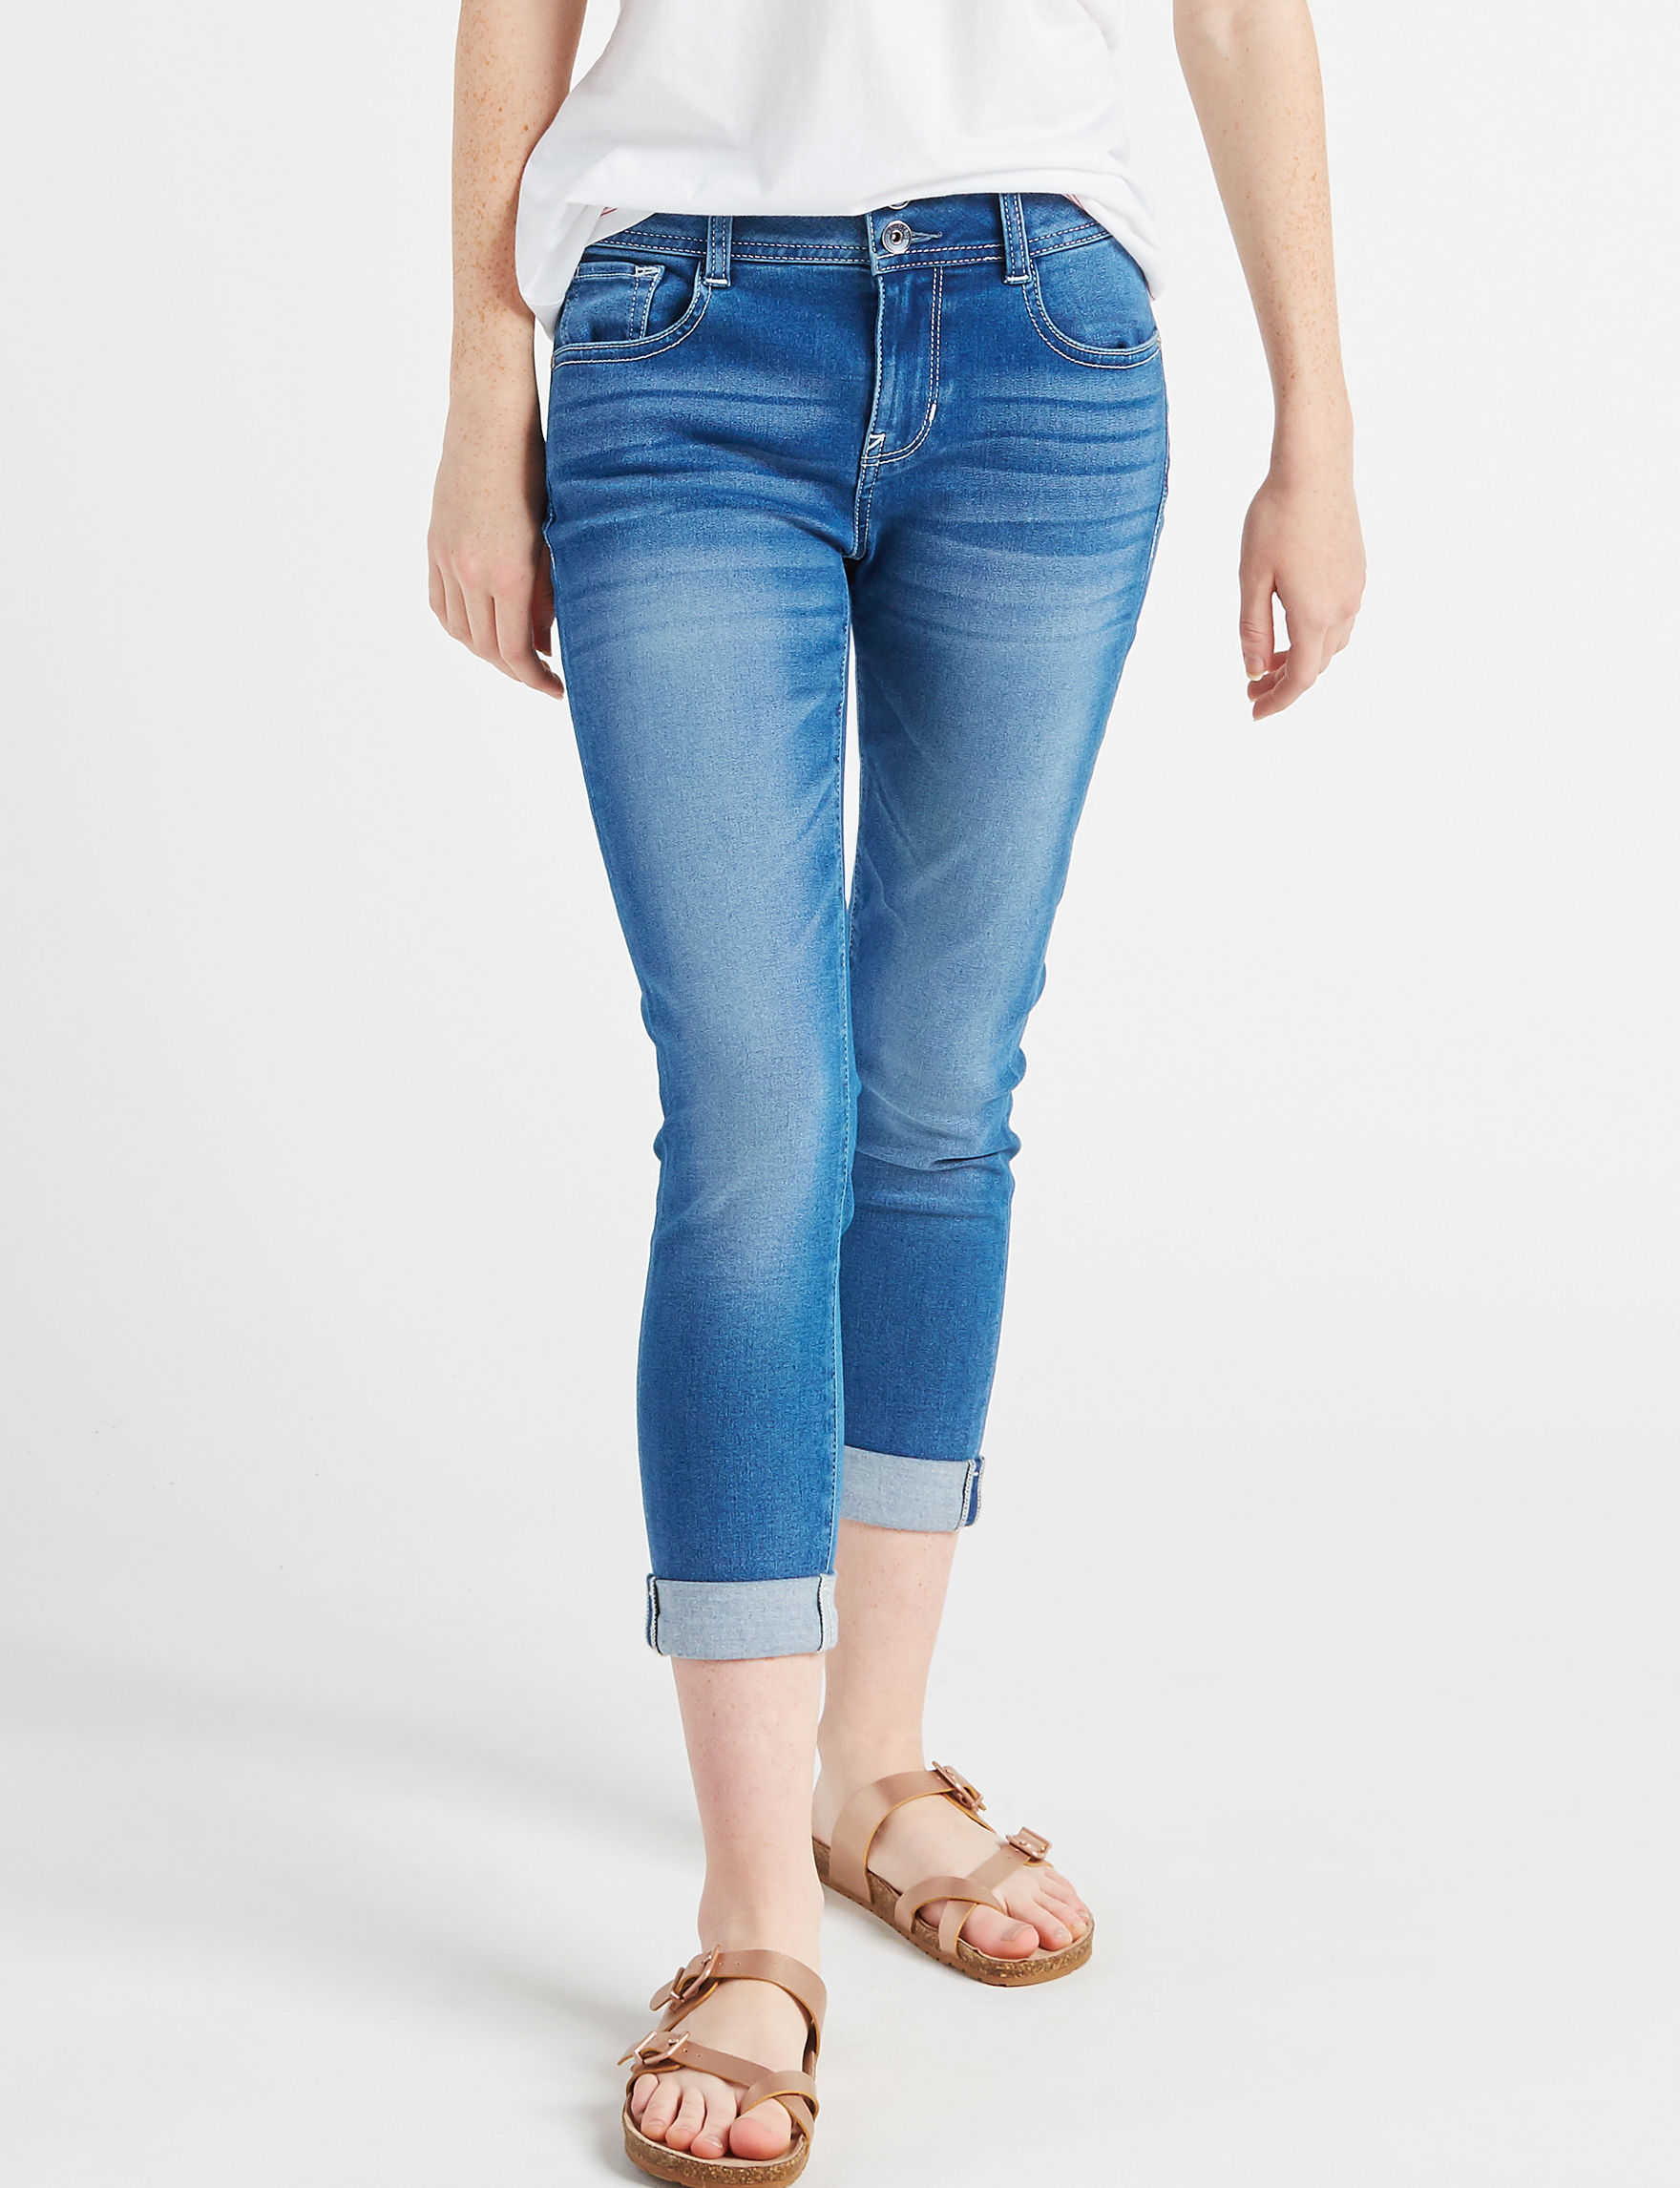 WallFlower Blue Capris & Crops Skinny